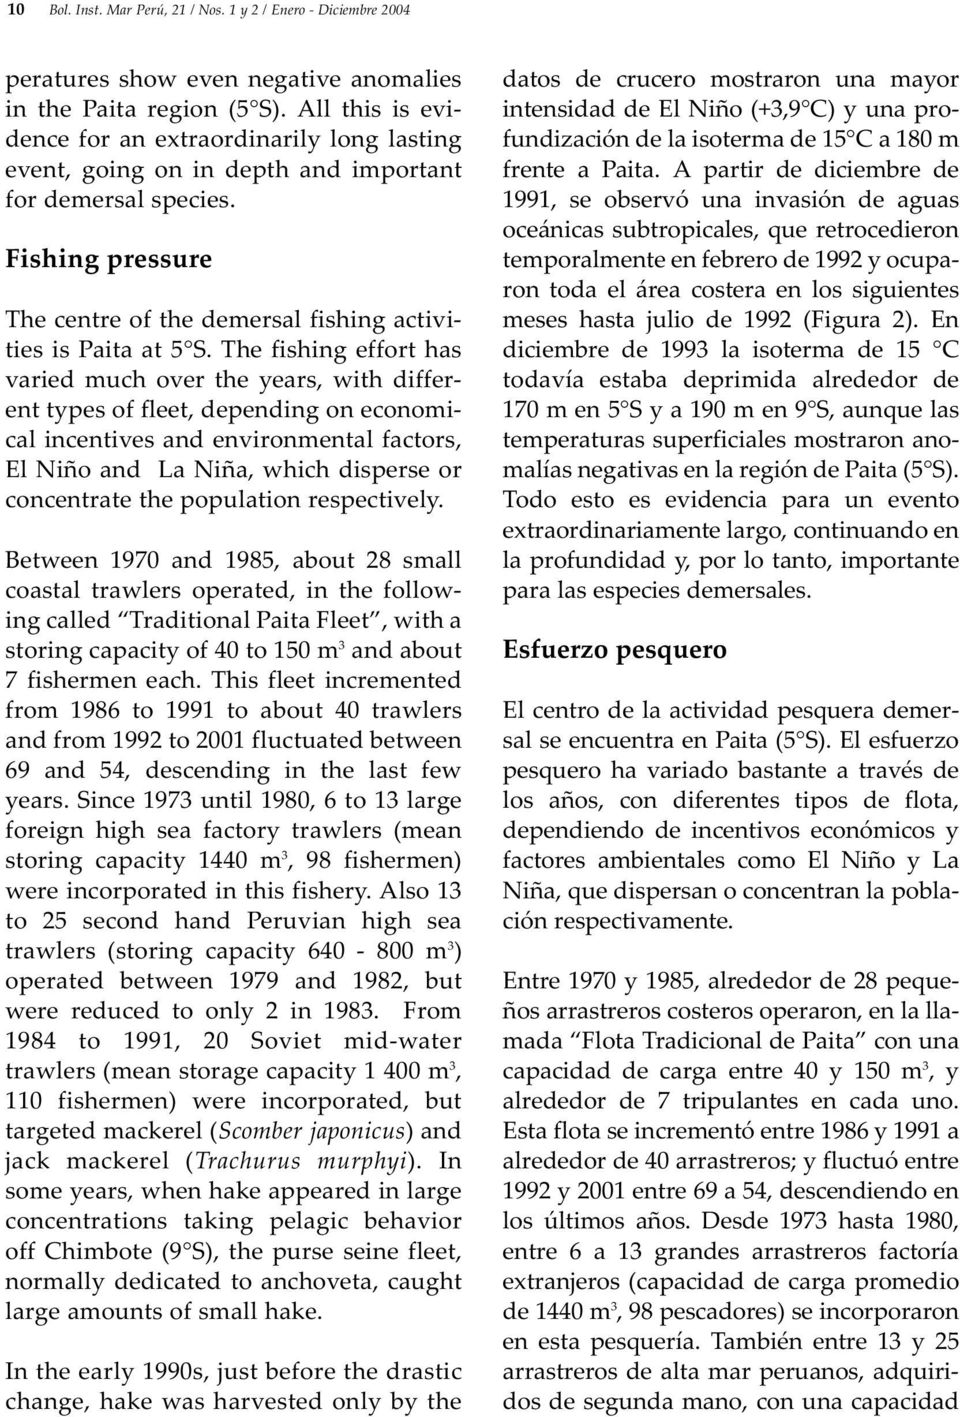 The fishing effort has varied much over the years, with different types of fleet, depending on economical incentives and environmental factors, El Niño and La Niña, which disperse or concentrate the